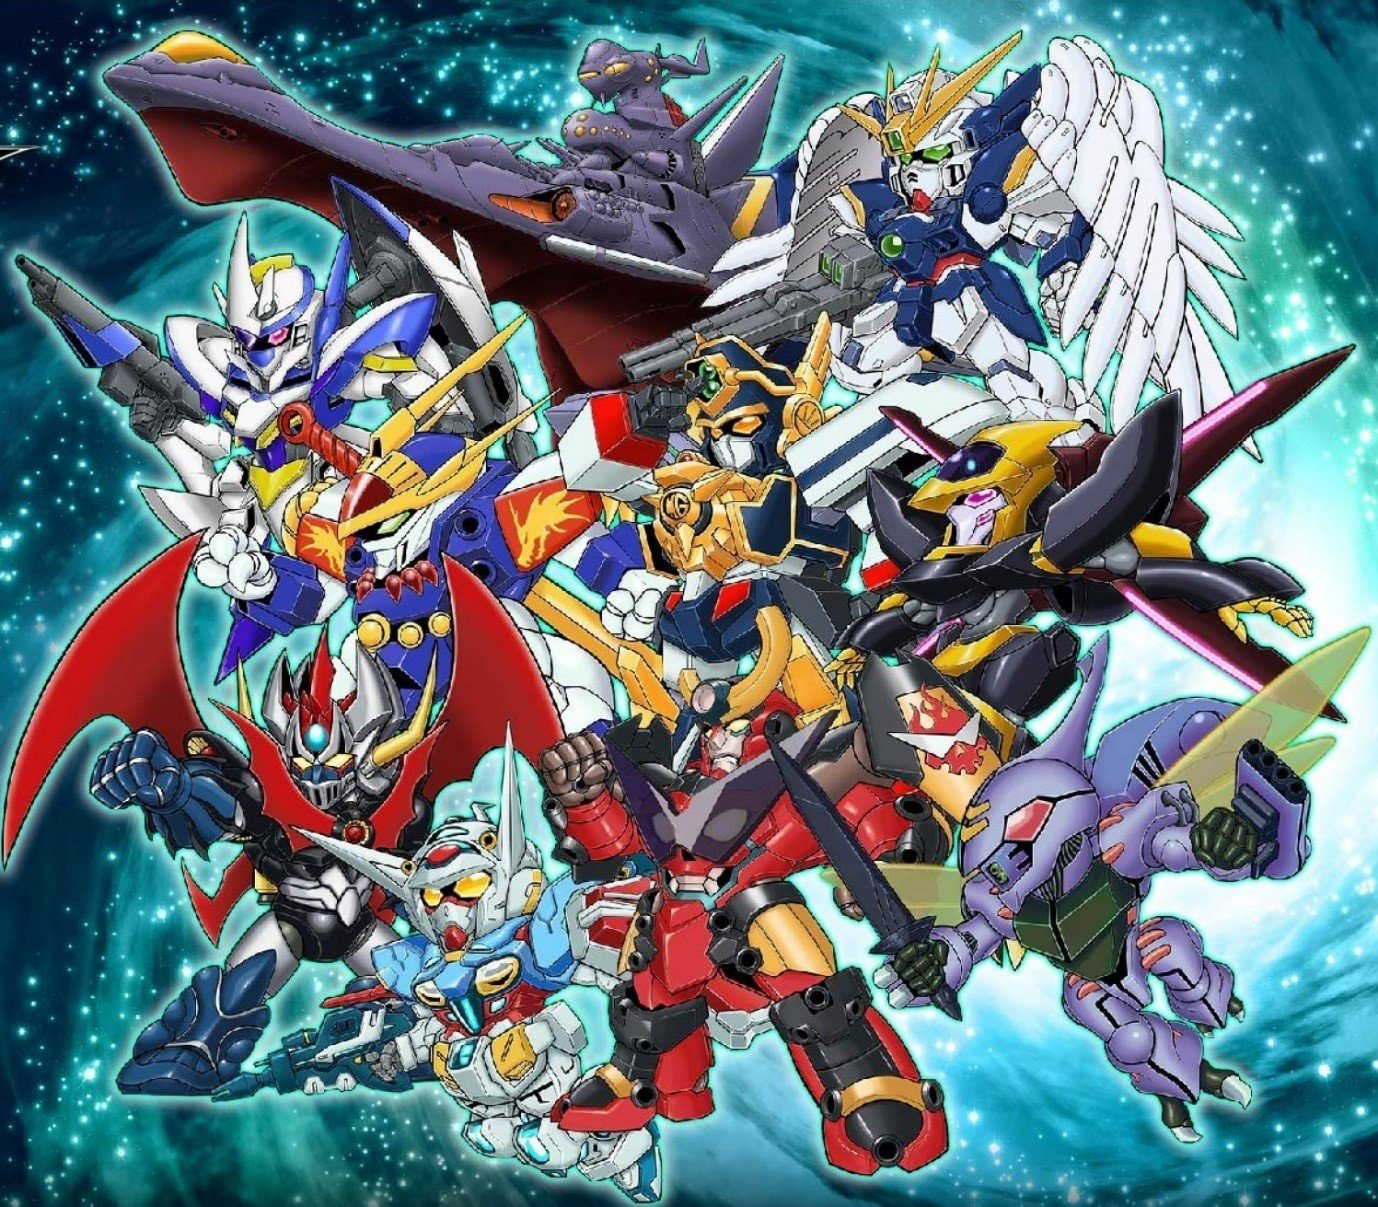 Super Robot Wars 30th Anniversary